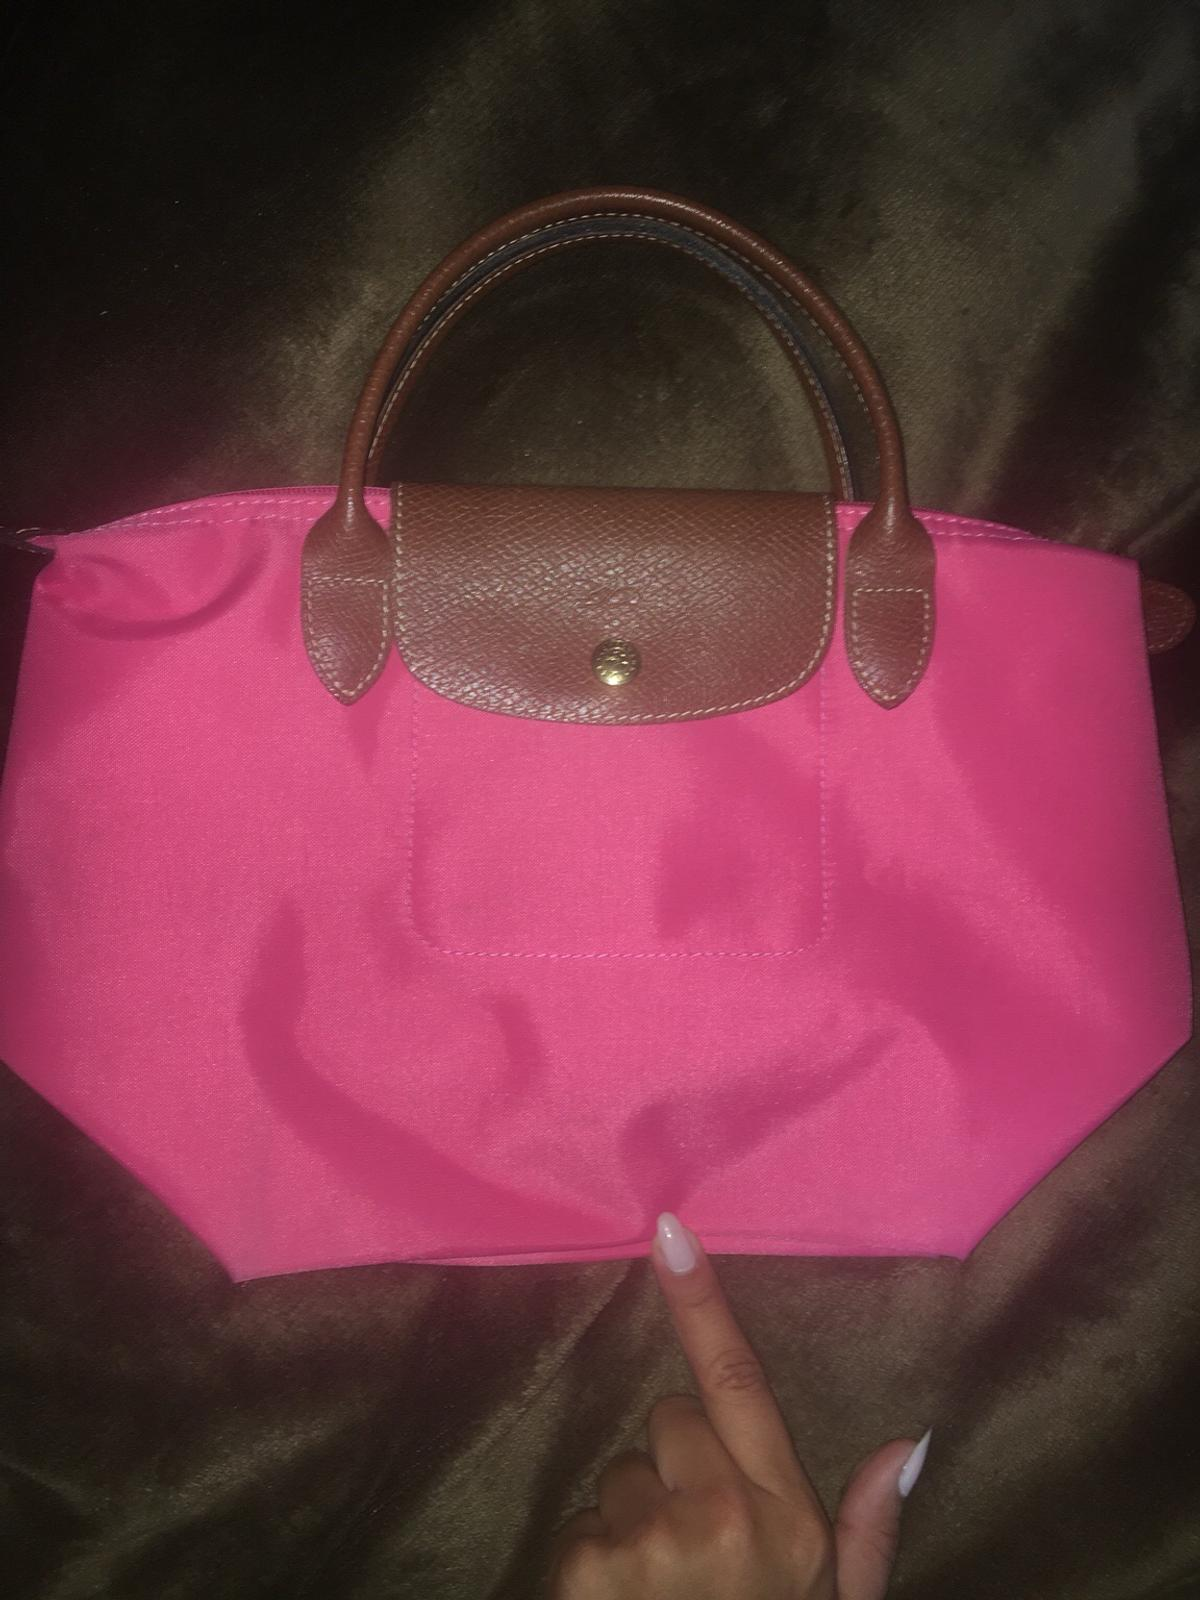 414e1f3bd2cfd Longchamp Tasche Original in 9433 Sankt Andrä for €15.00 for sale ...